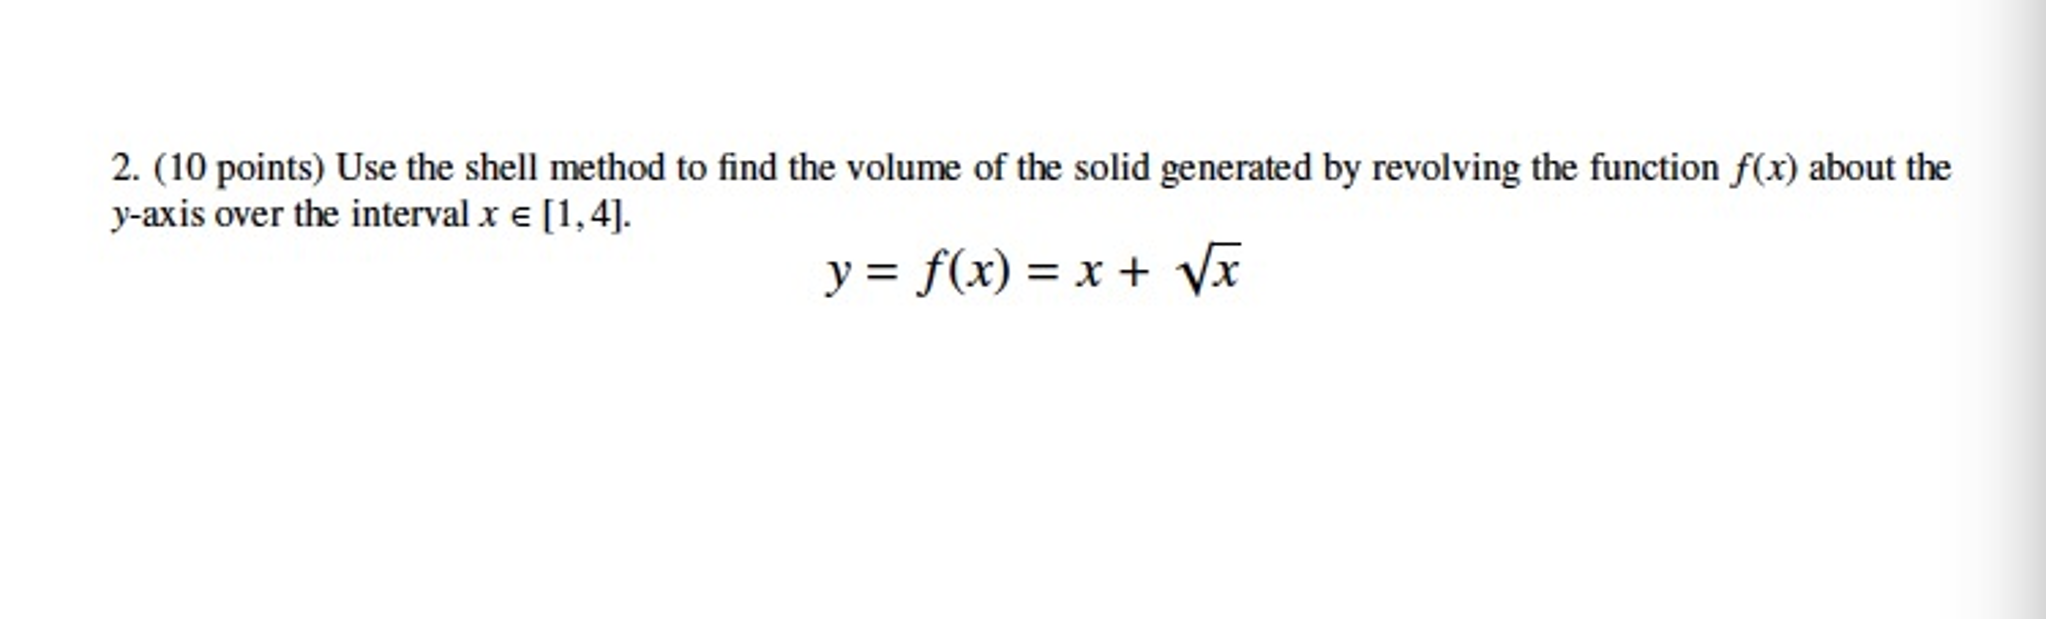 Use The Shell Method To Find The Volume Of The Sol